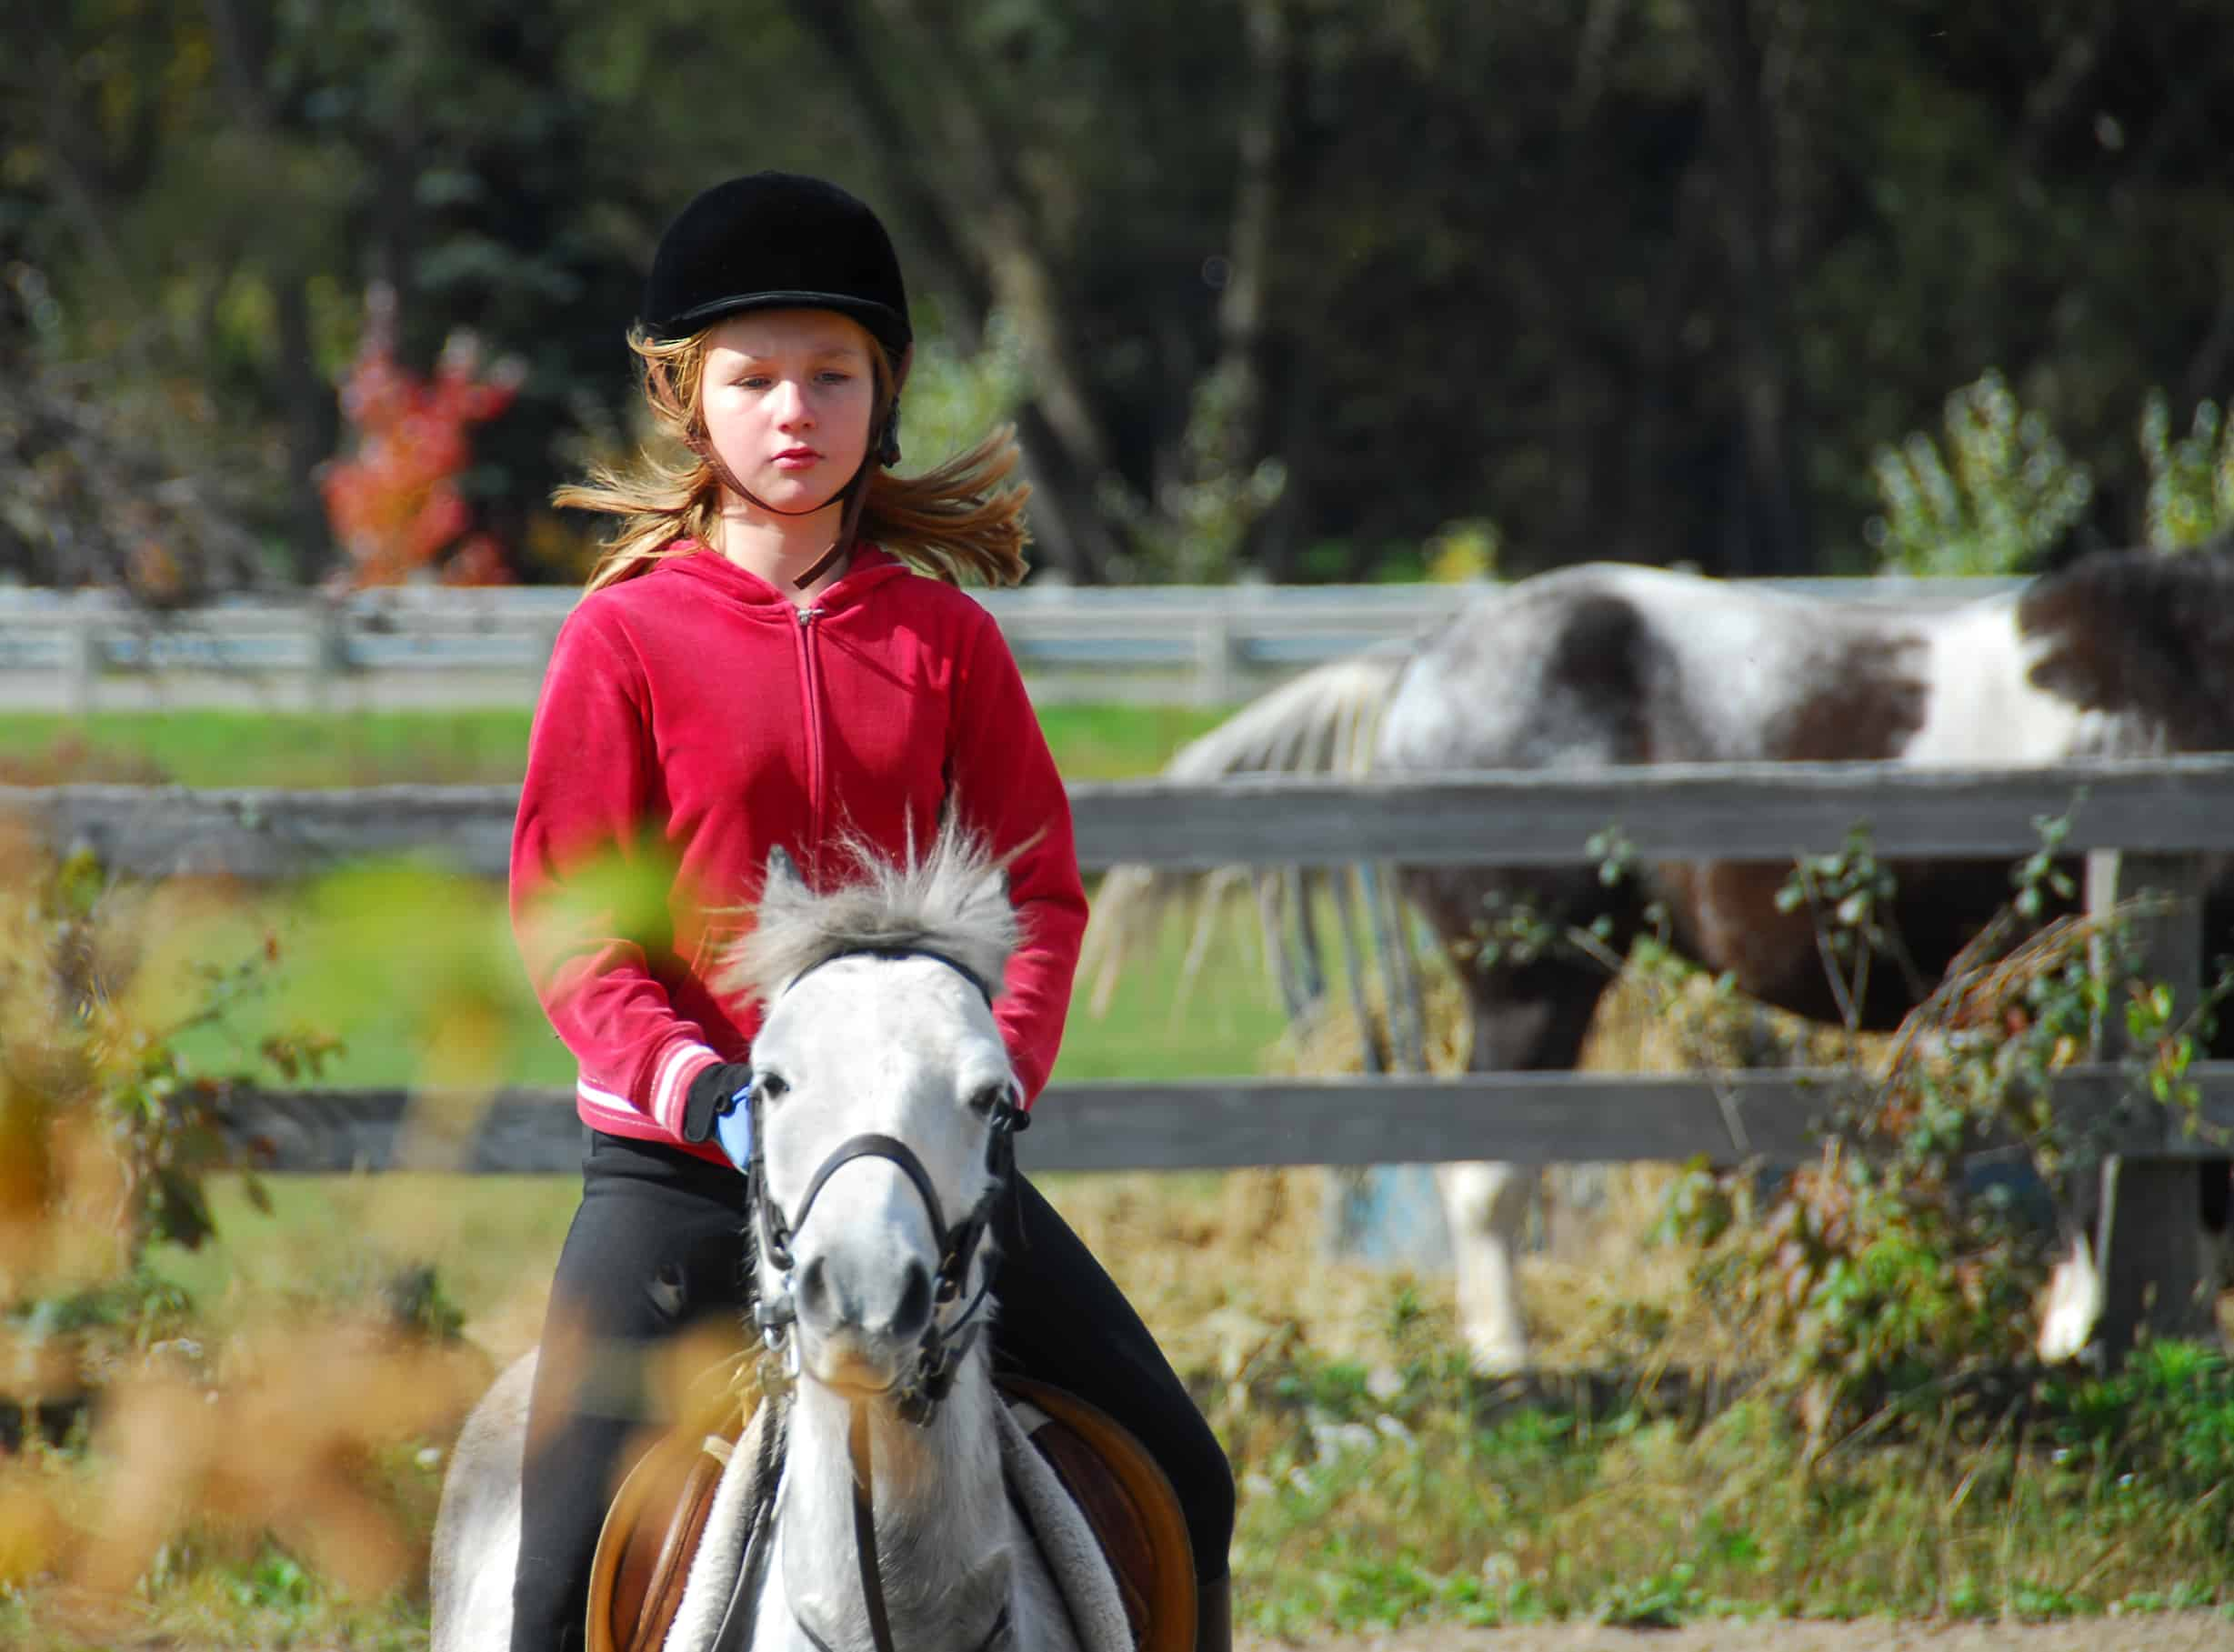 Young girl riding a white equine at countryside